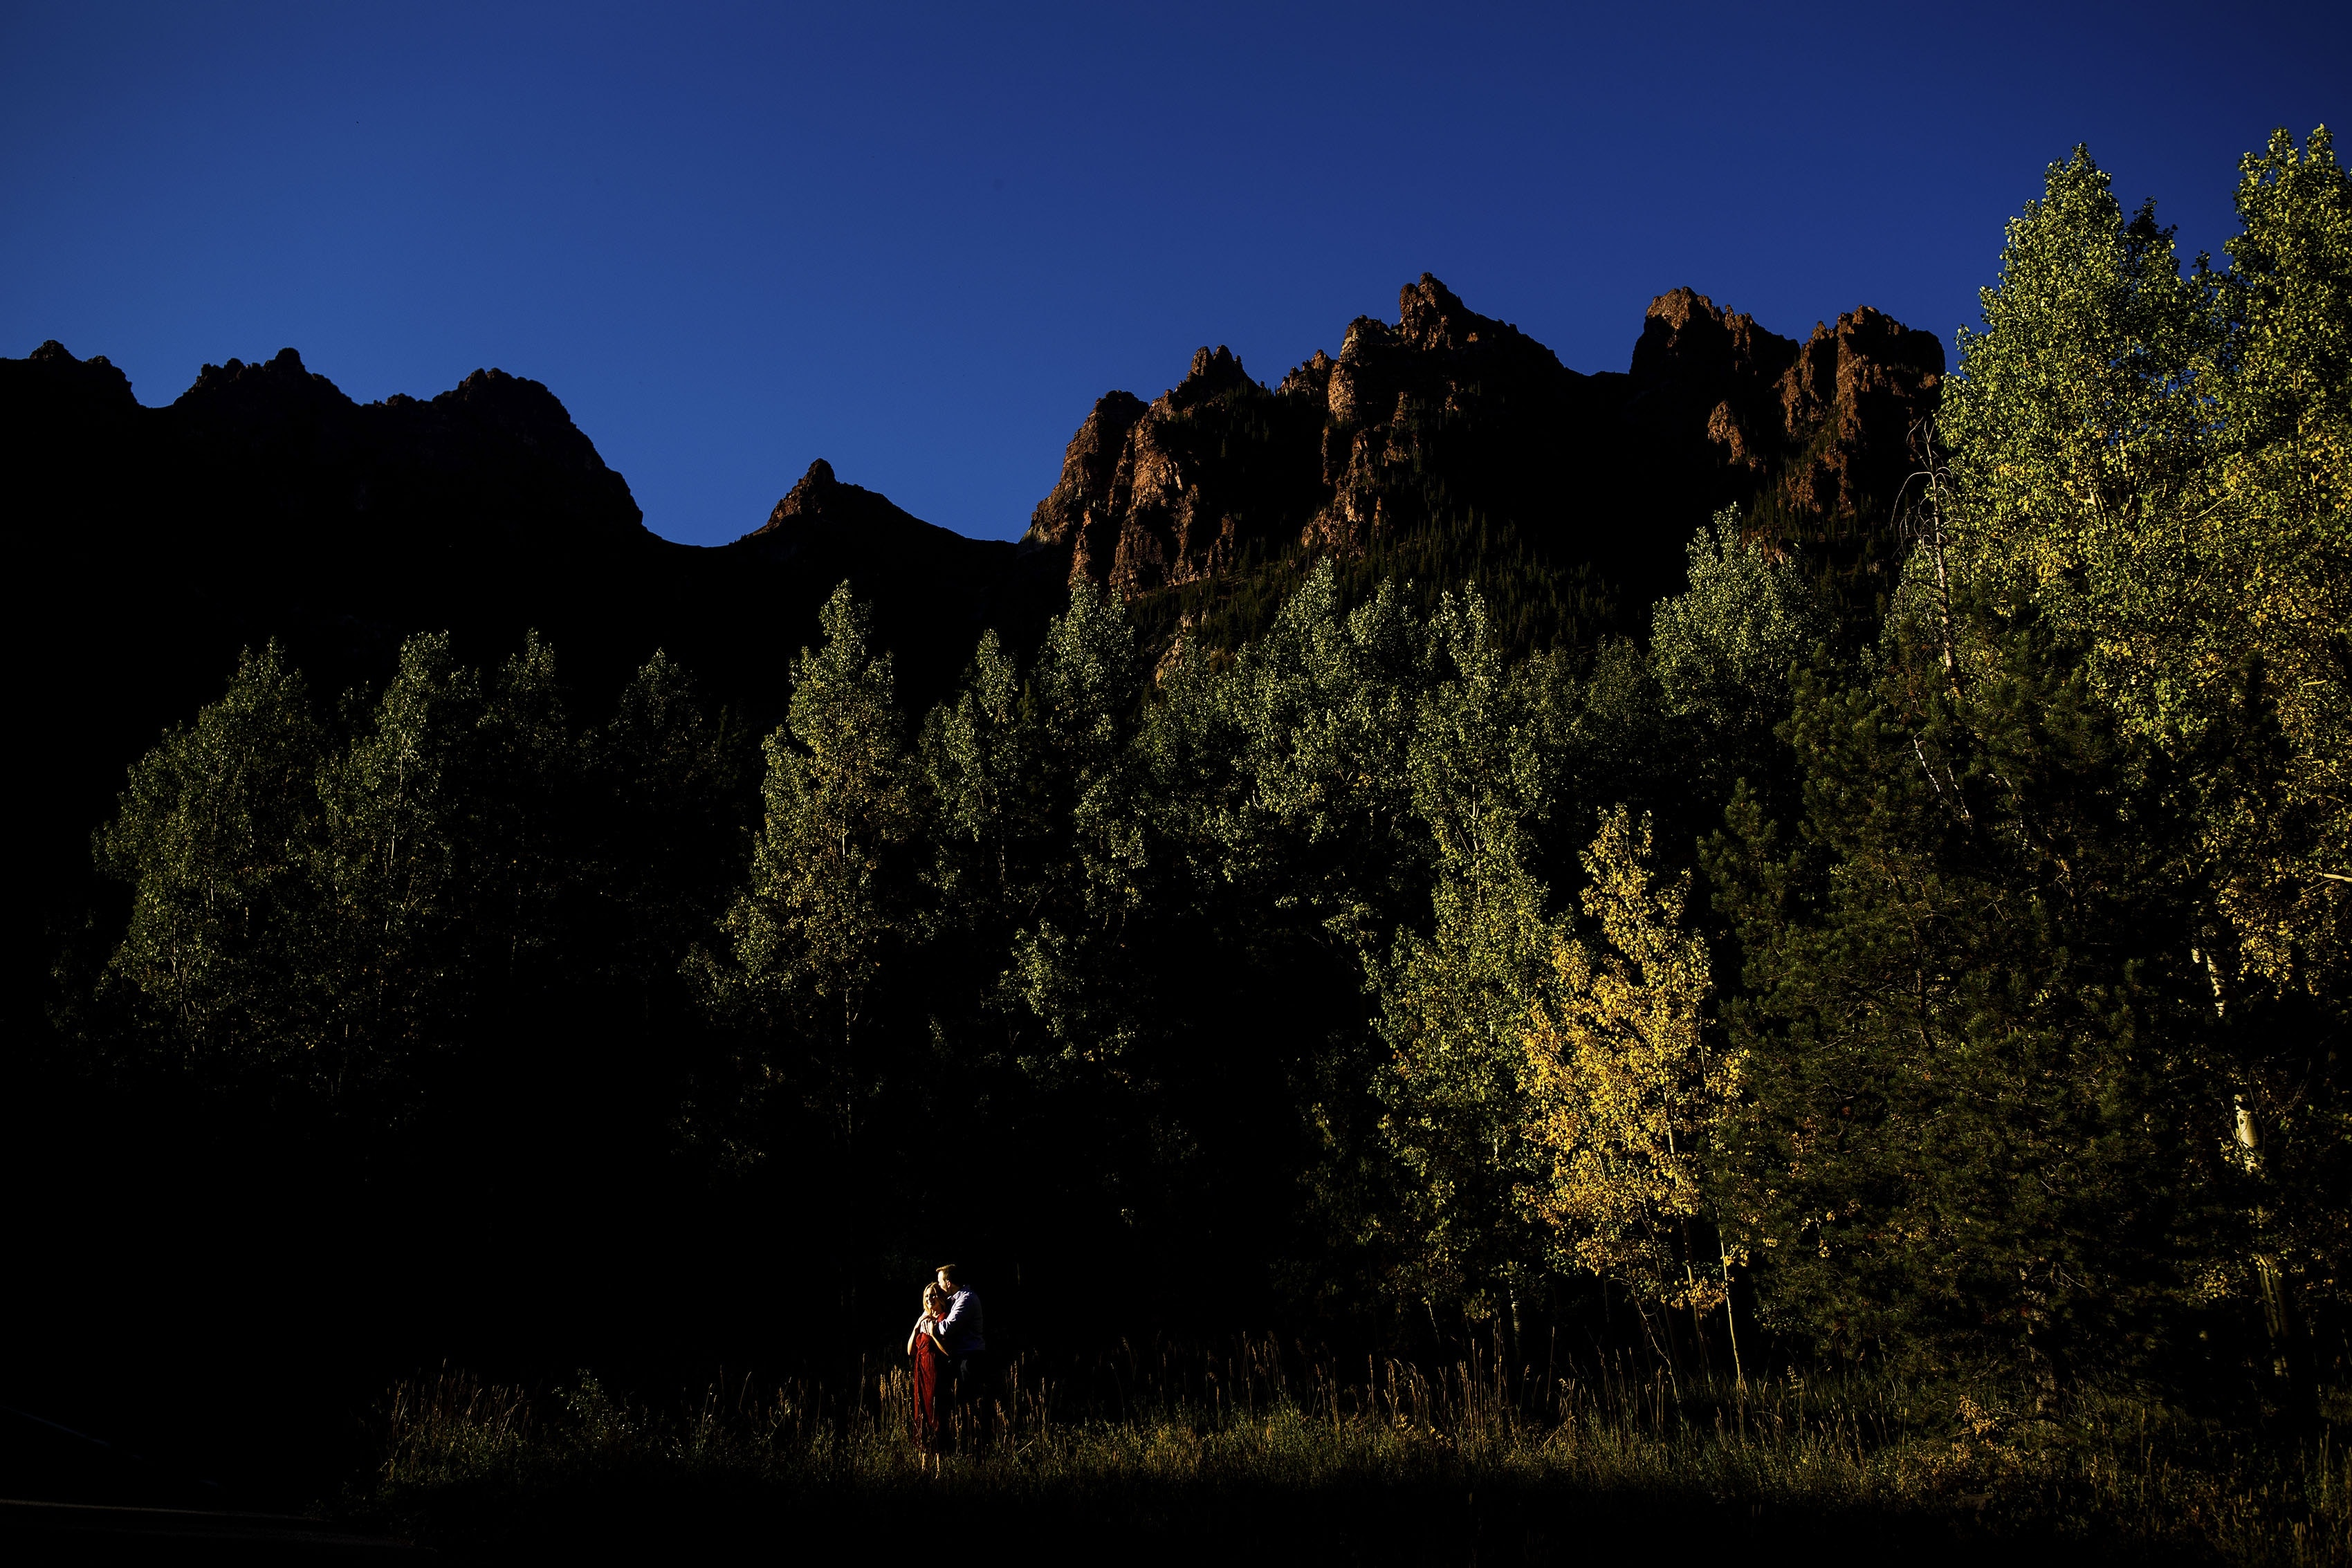 A couple pose together at the Maroon Bells during golden hour